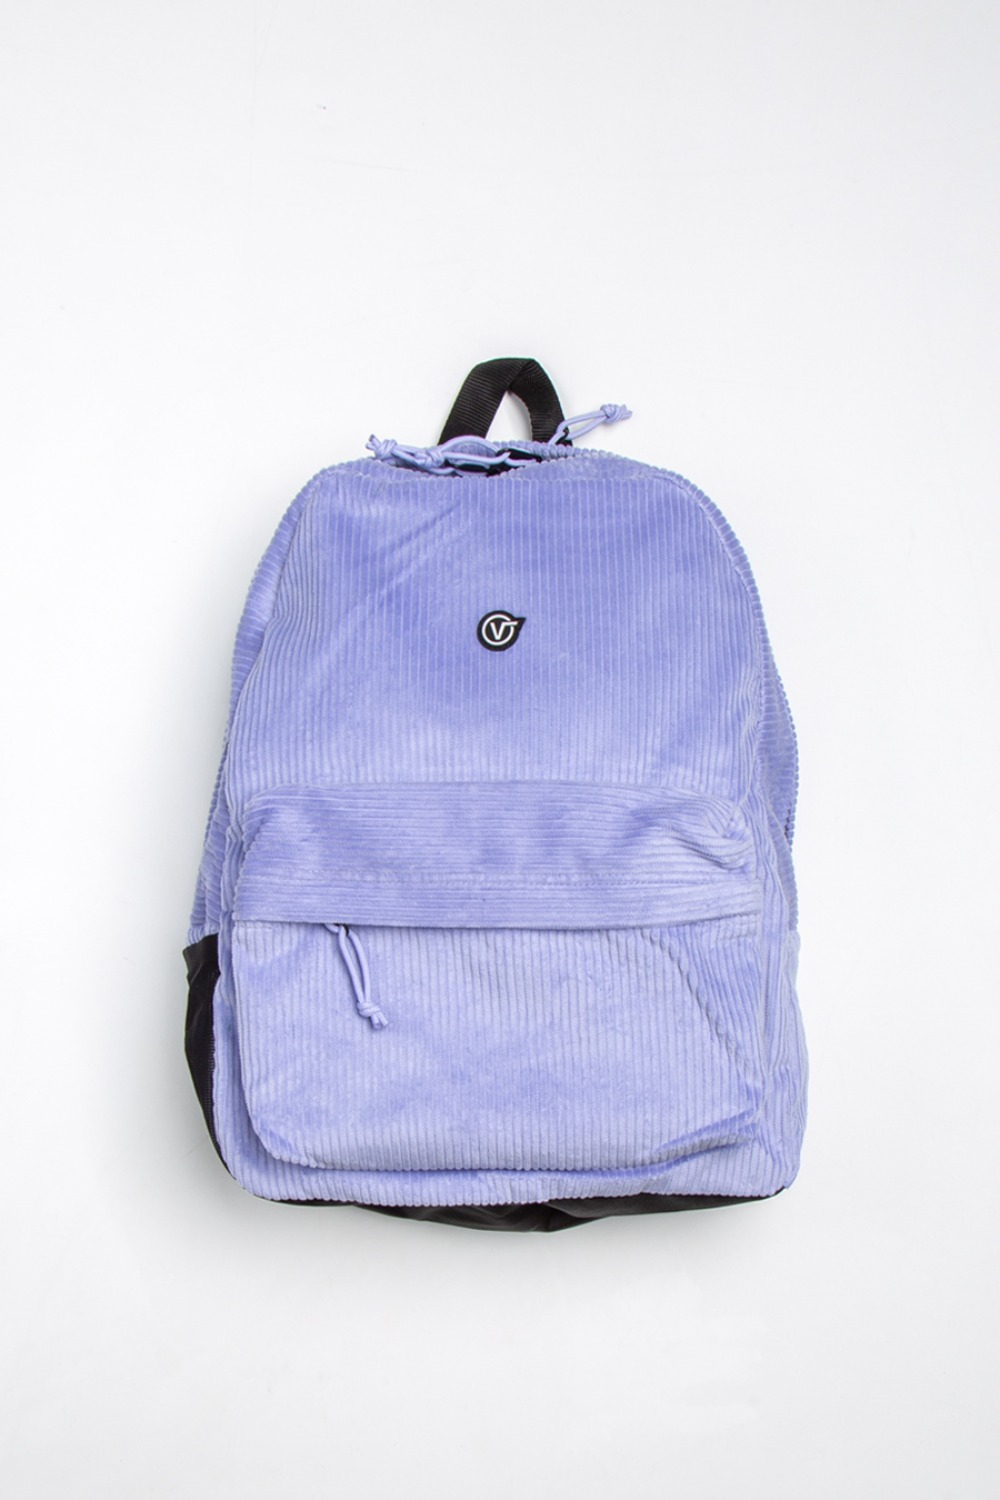 VANS X AP CORDUROY BACKPACK